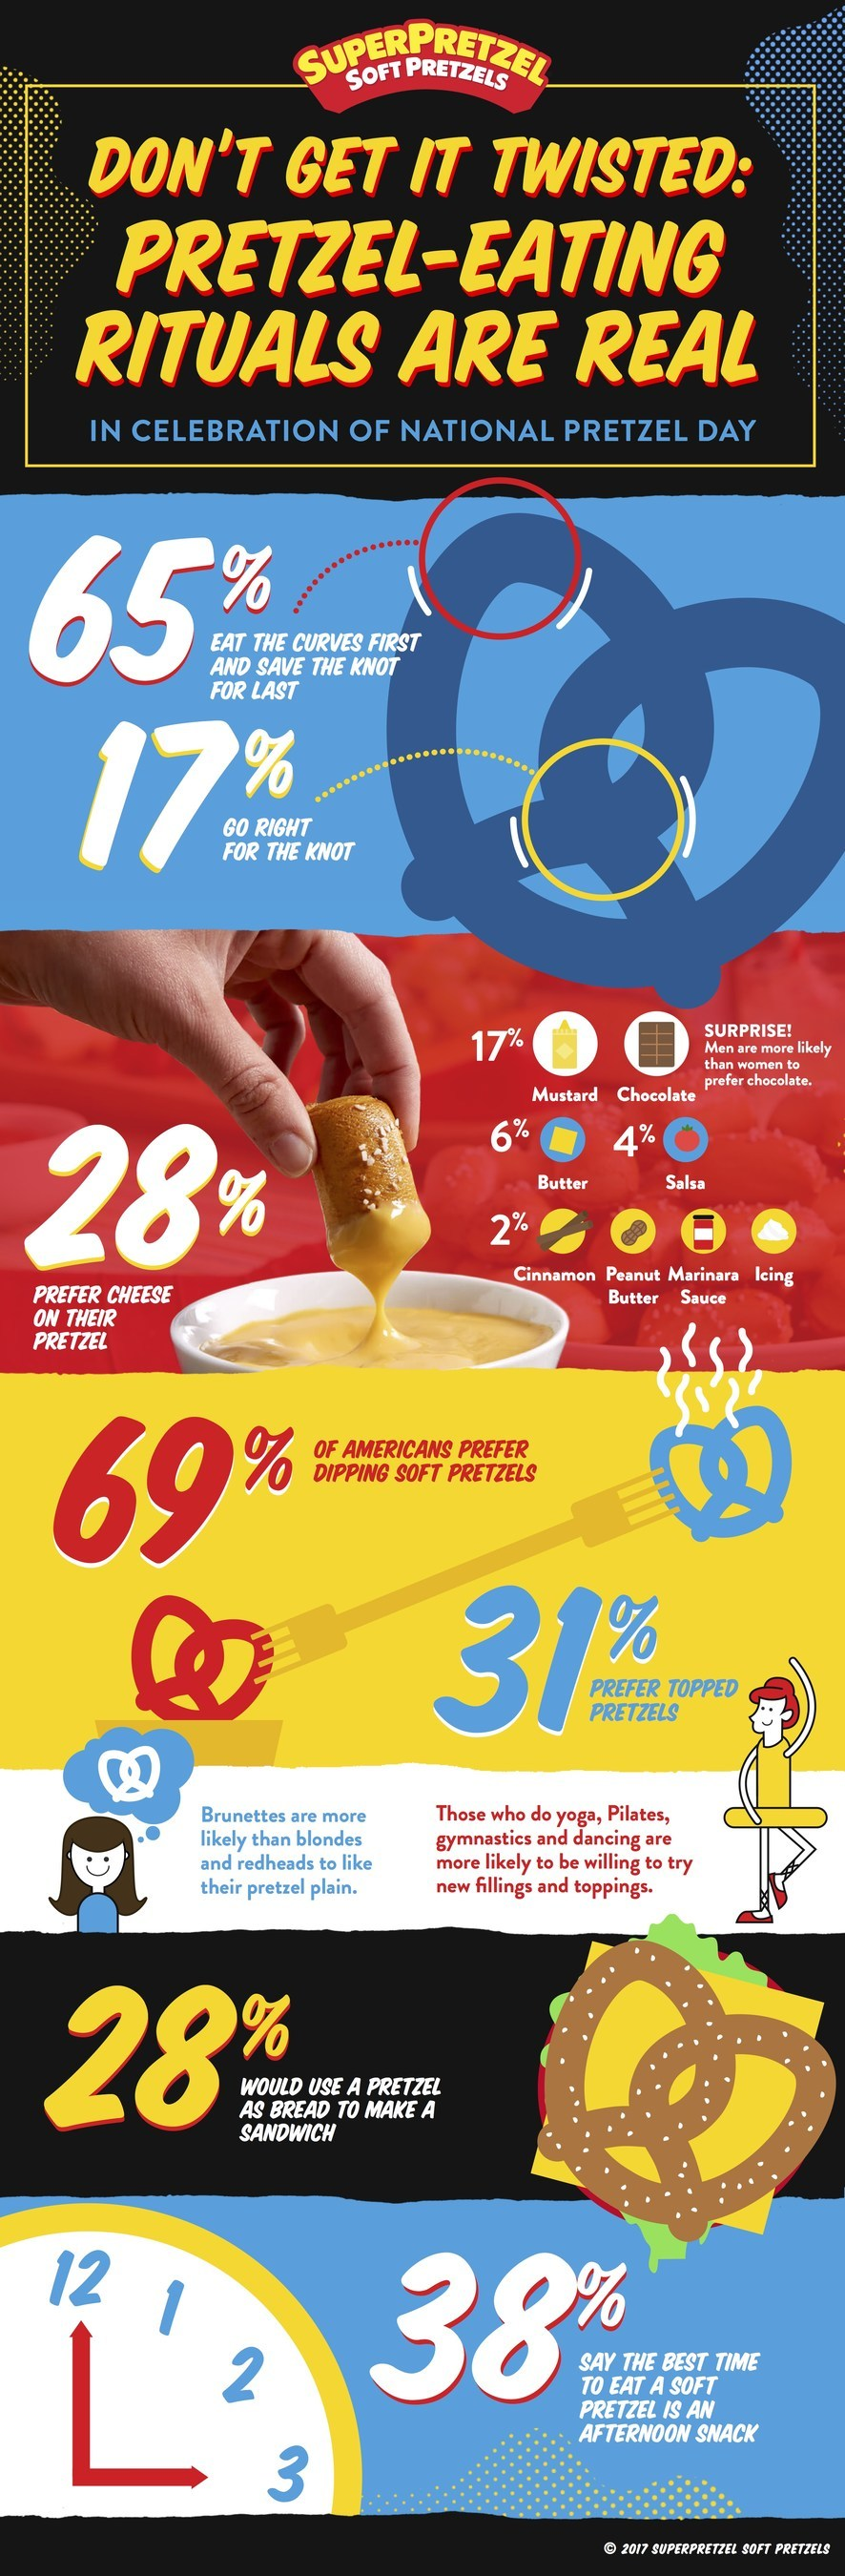 A national survey conducted by SUPERPRETZEL Soft Pretzels in celebration of National Pretzel Day found that Americans have strong preferences when it comes to their pretzel-eating habits.